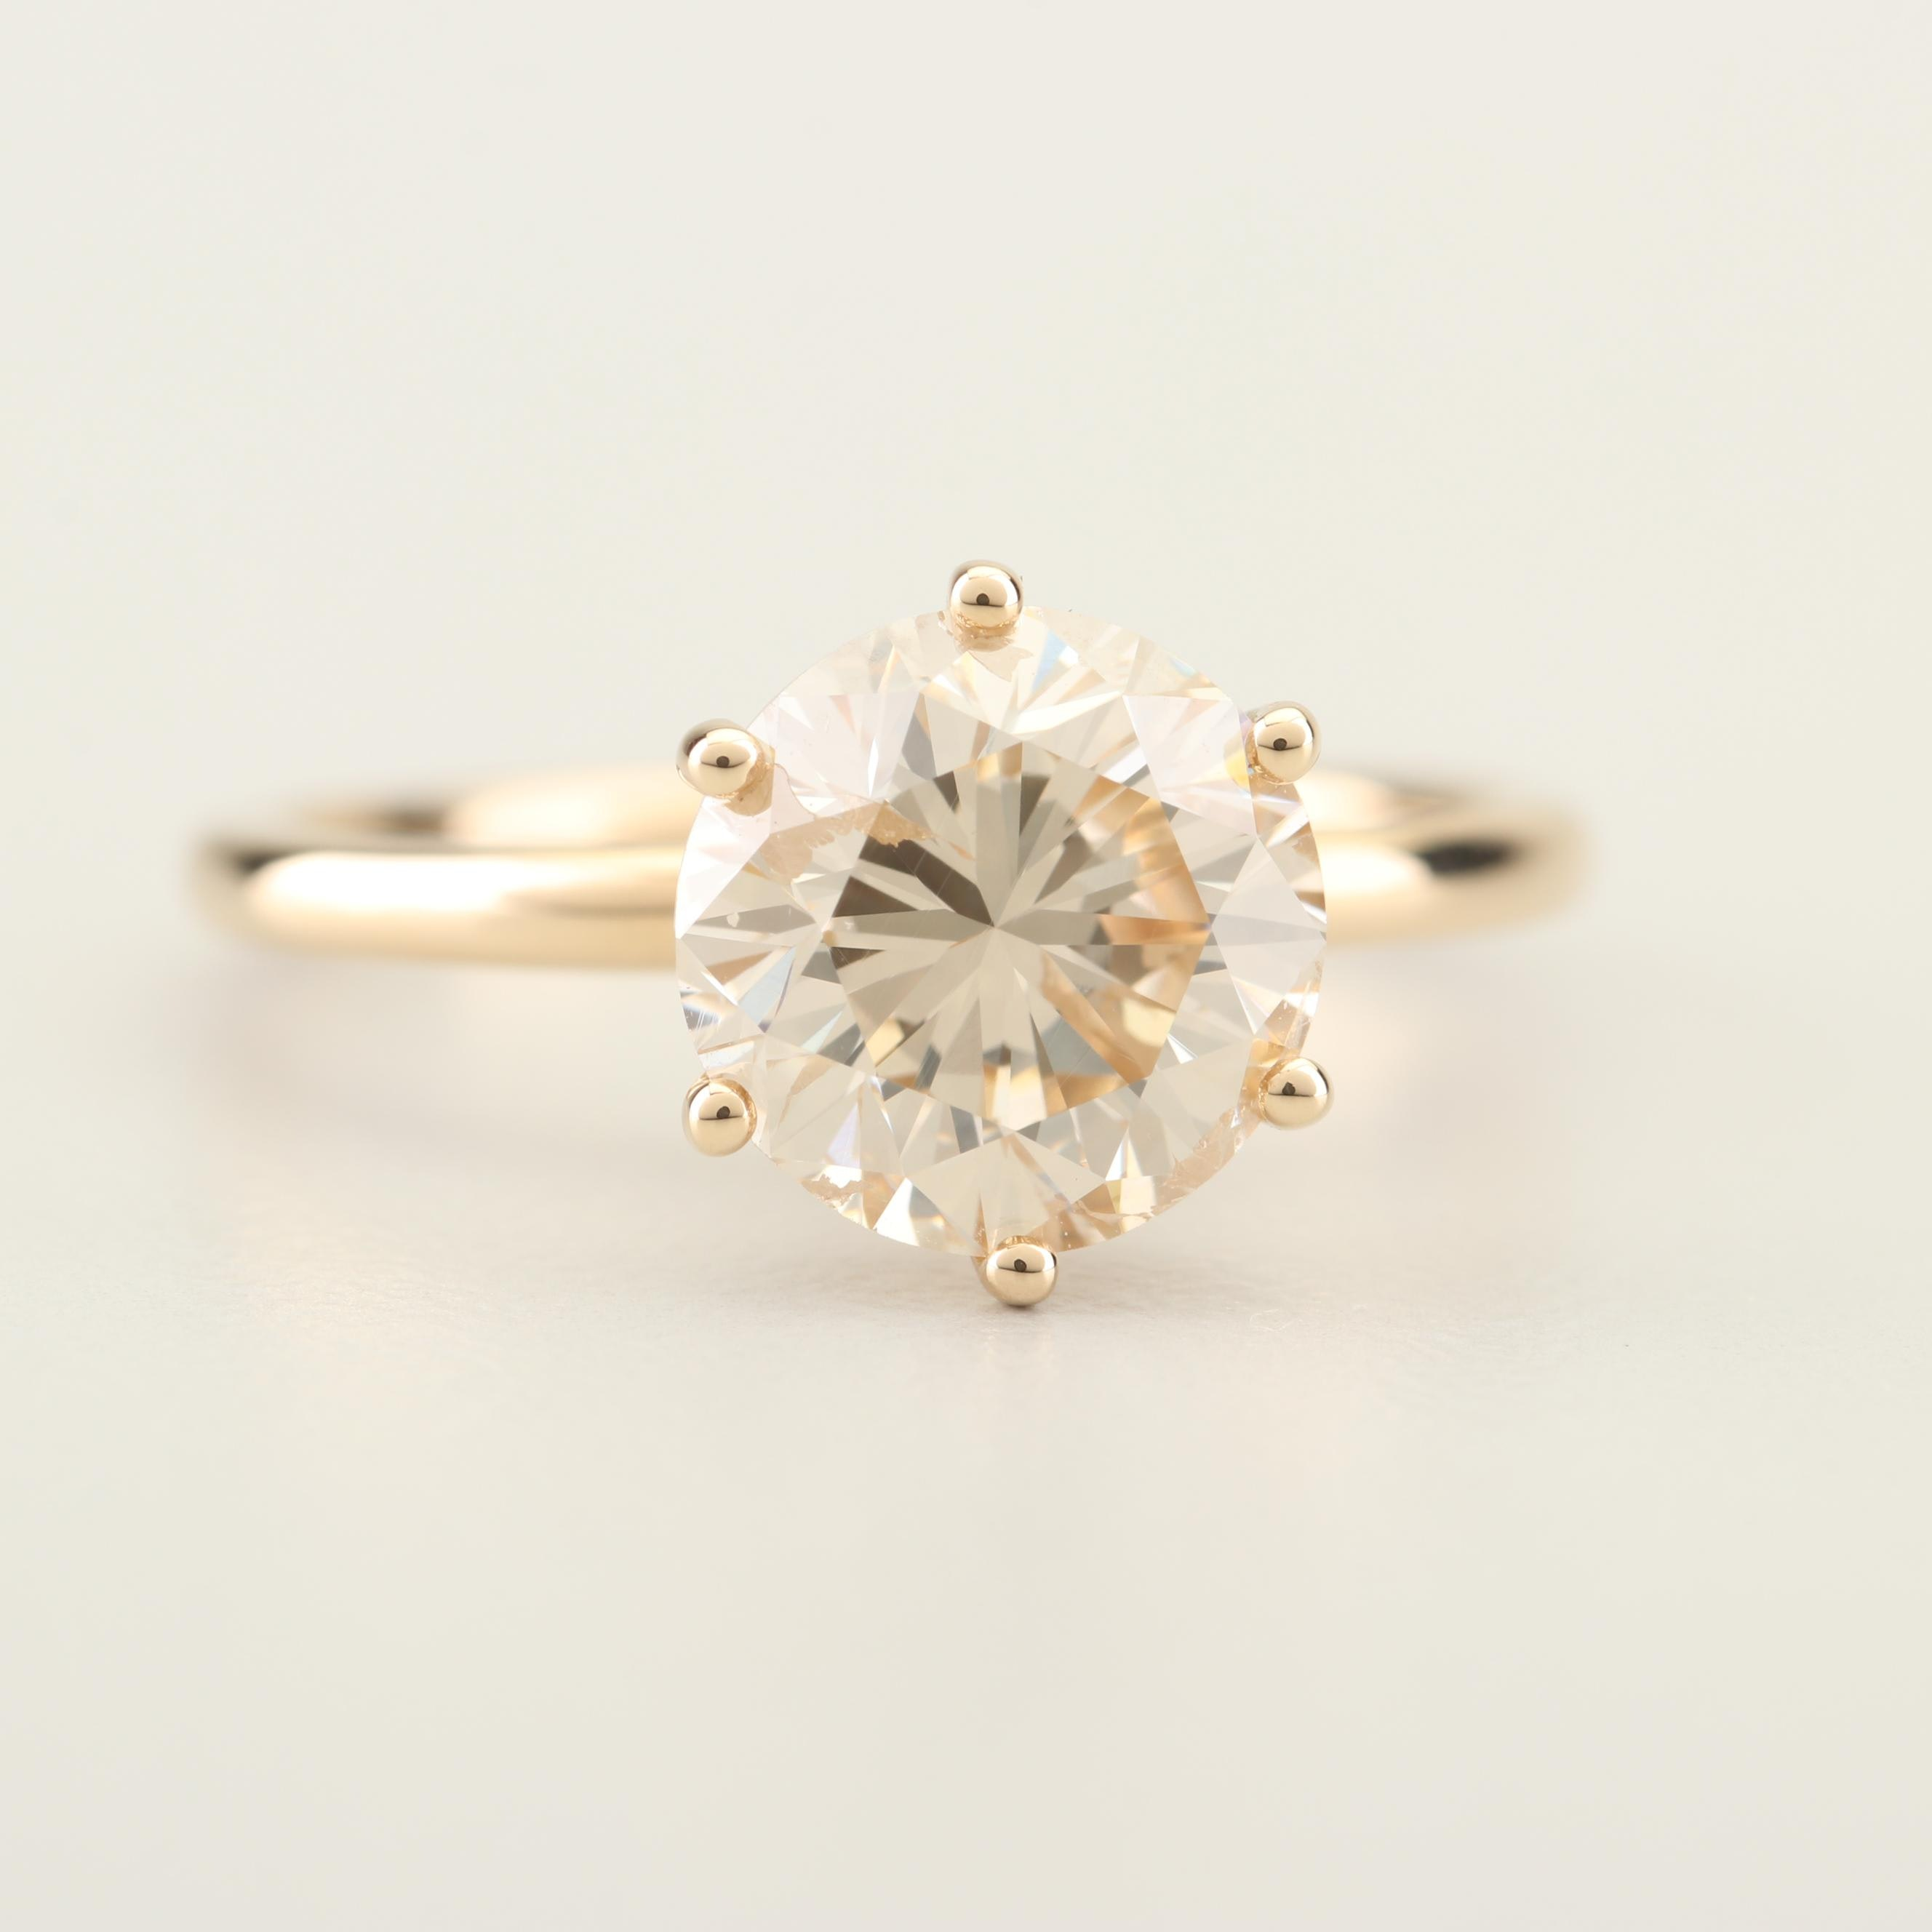 14K Yellow Gold 2.40 CT Diamond Solitaire Ring